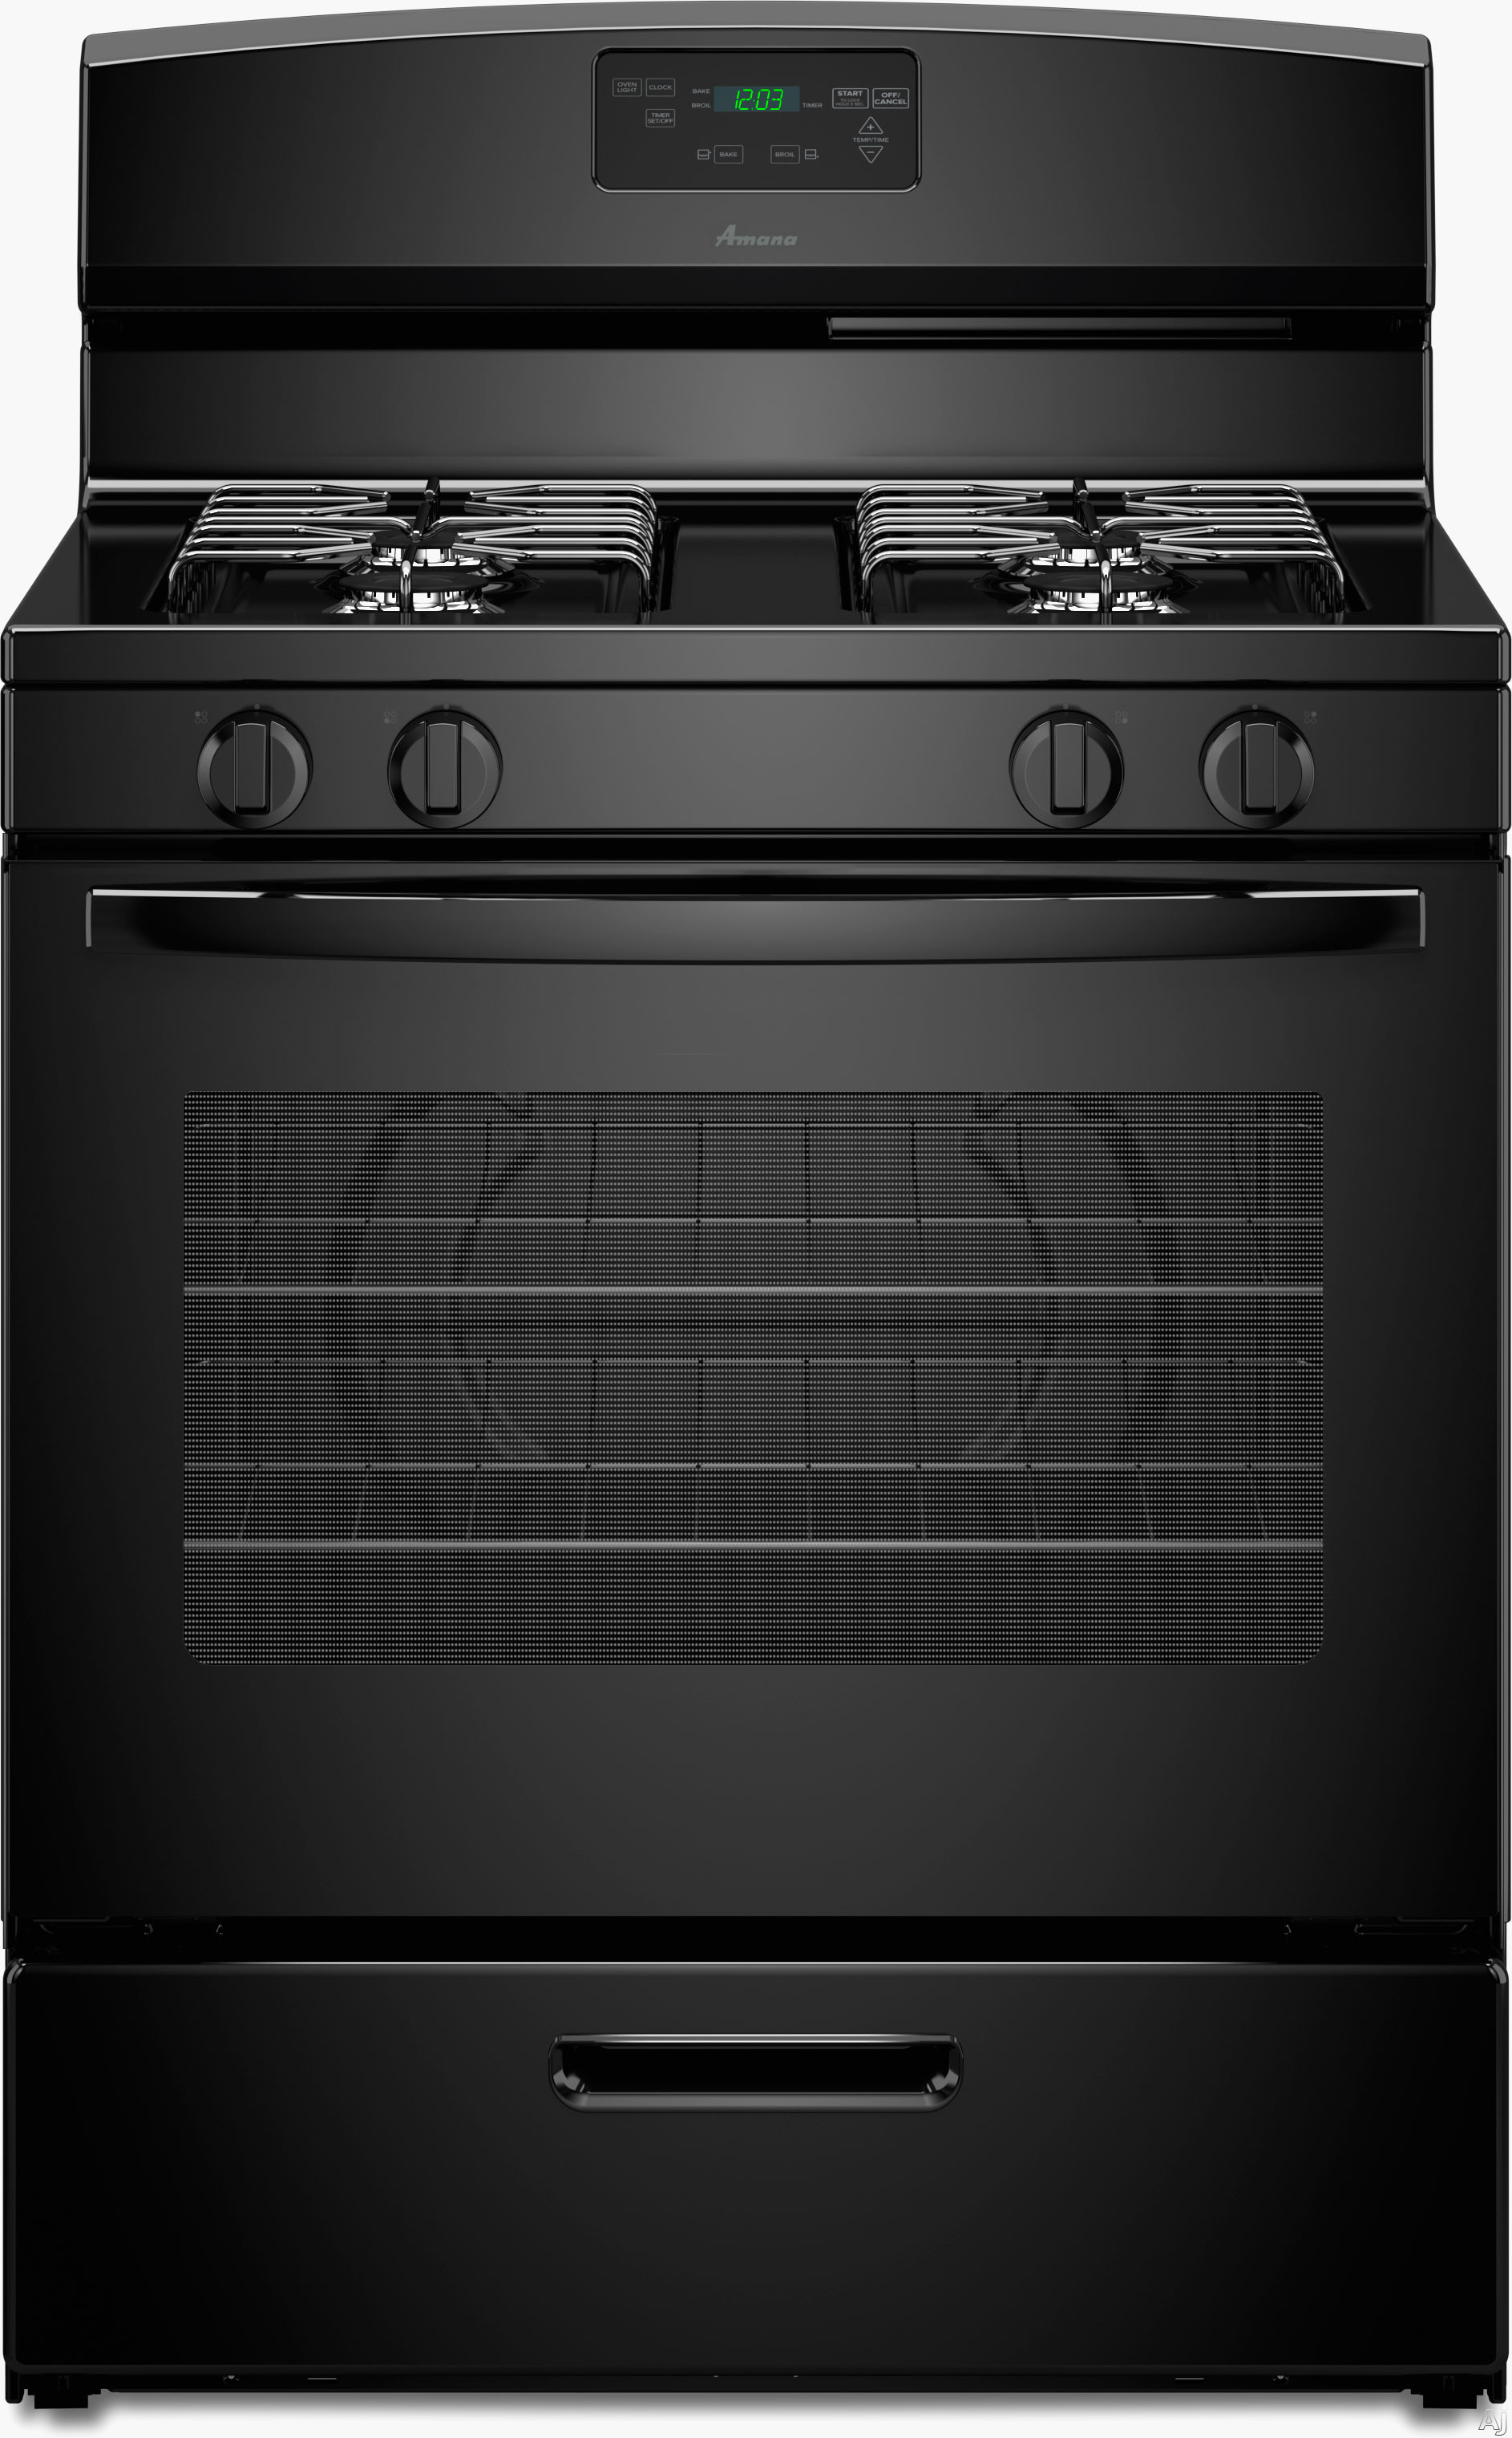 Amana AGR5330BAB 30 Inch Freestanding Gas Range with Boiler Drawer, Extra-Large Window, Easy Touch Controls, 4 Sealed Burners and 5.1 cu. ft. Oven Capacity: Black